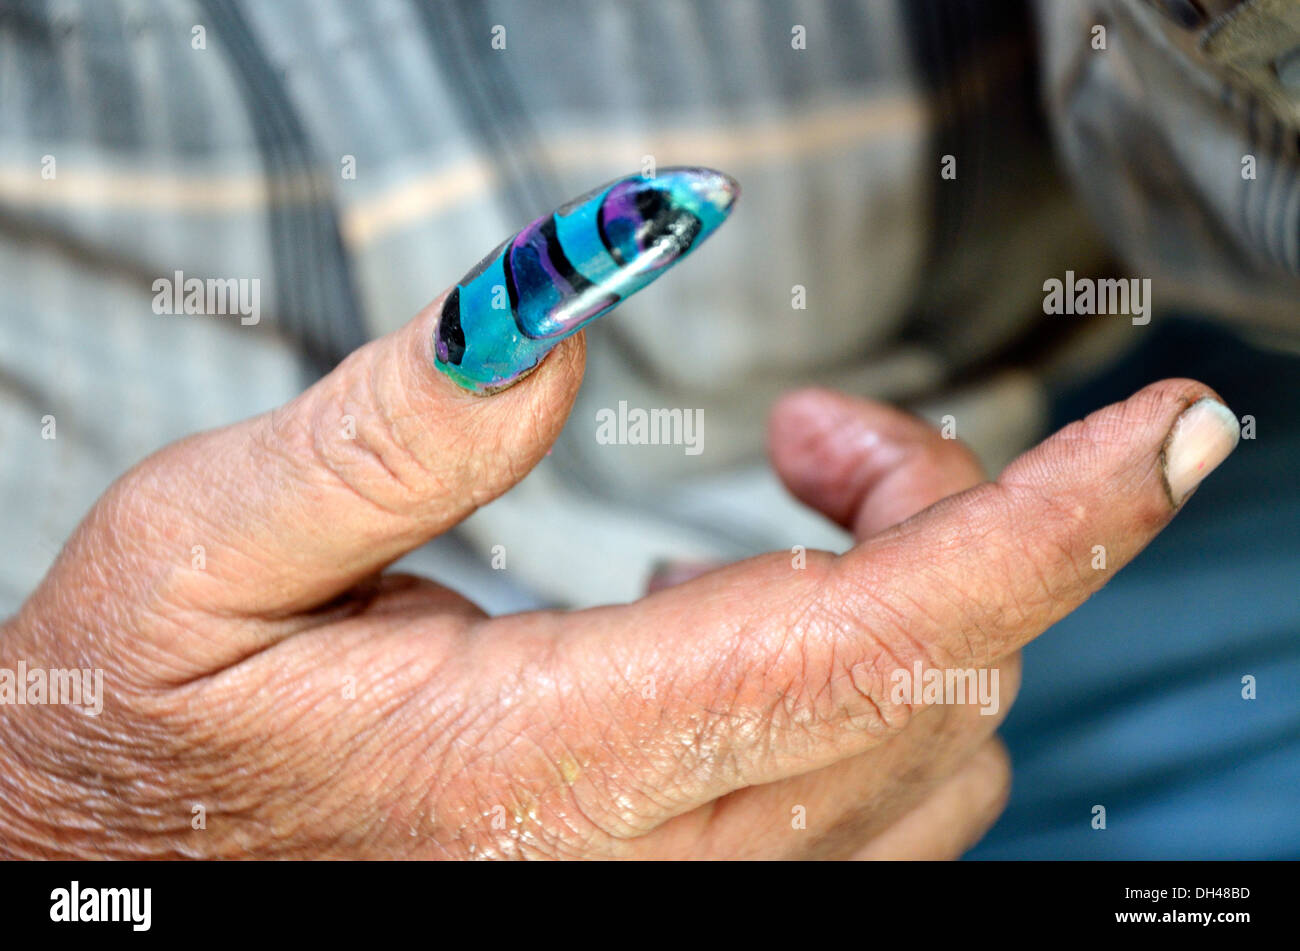 Detail Hand Man Painted Nails Stock Photos & Detail Hand Man Painted ...